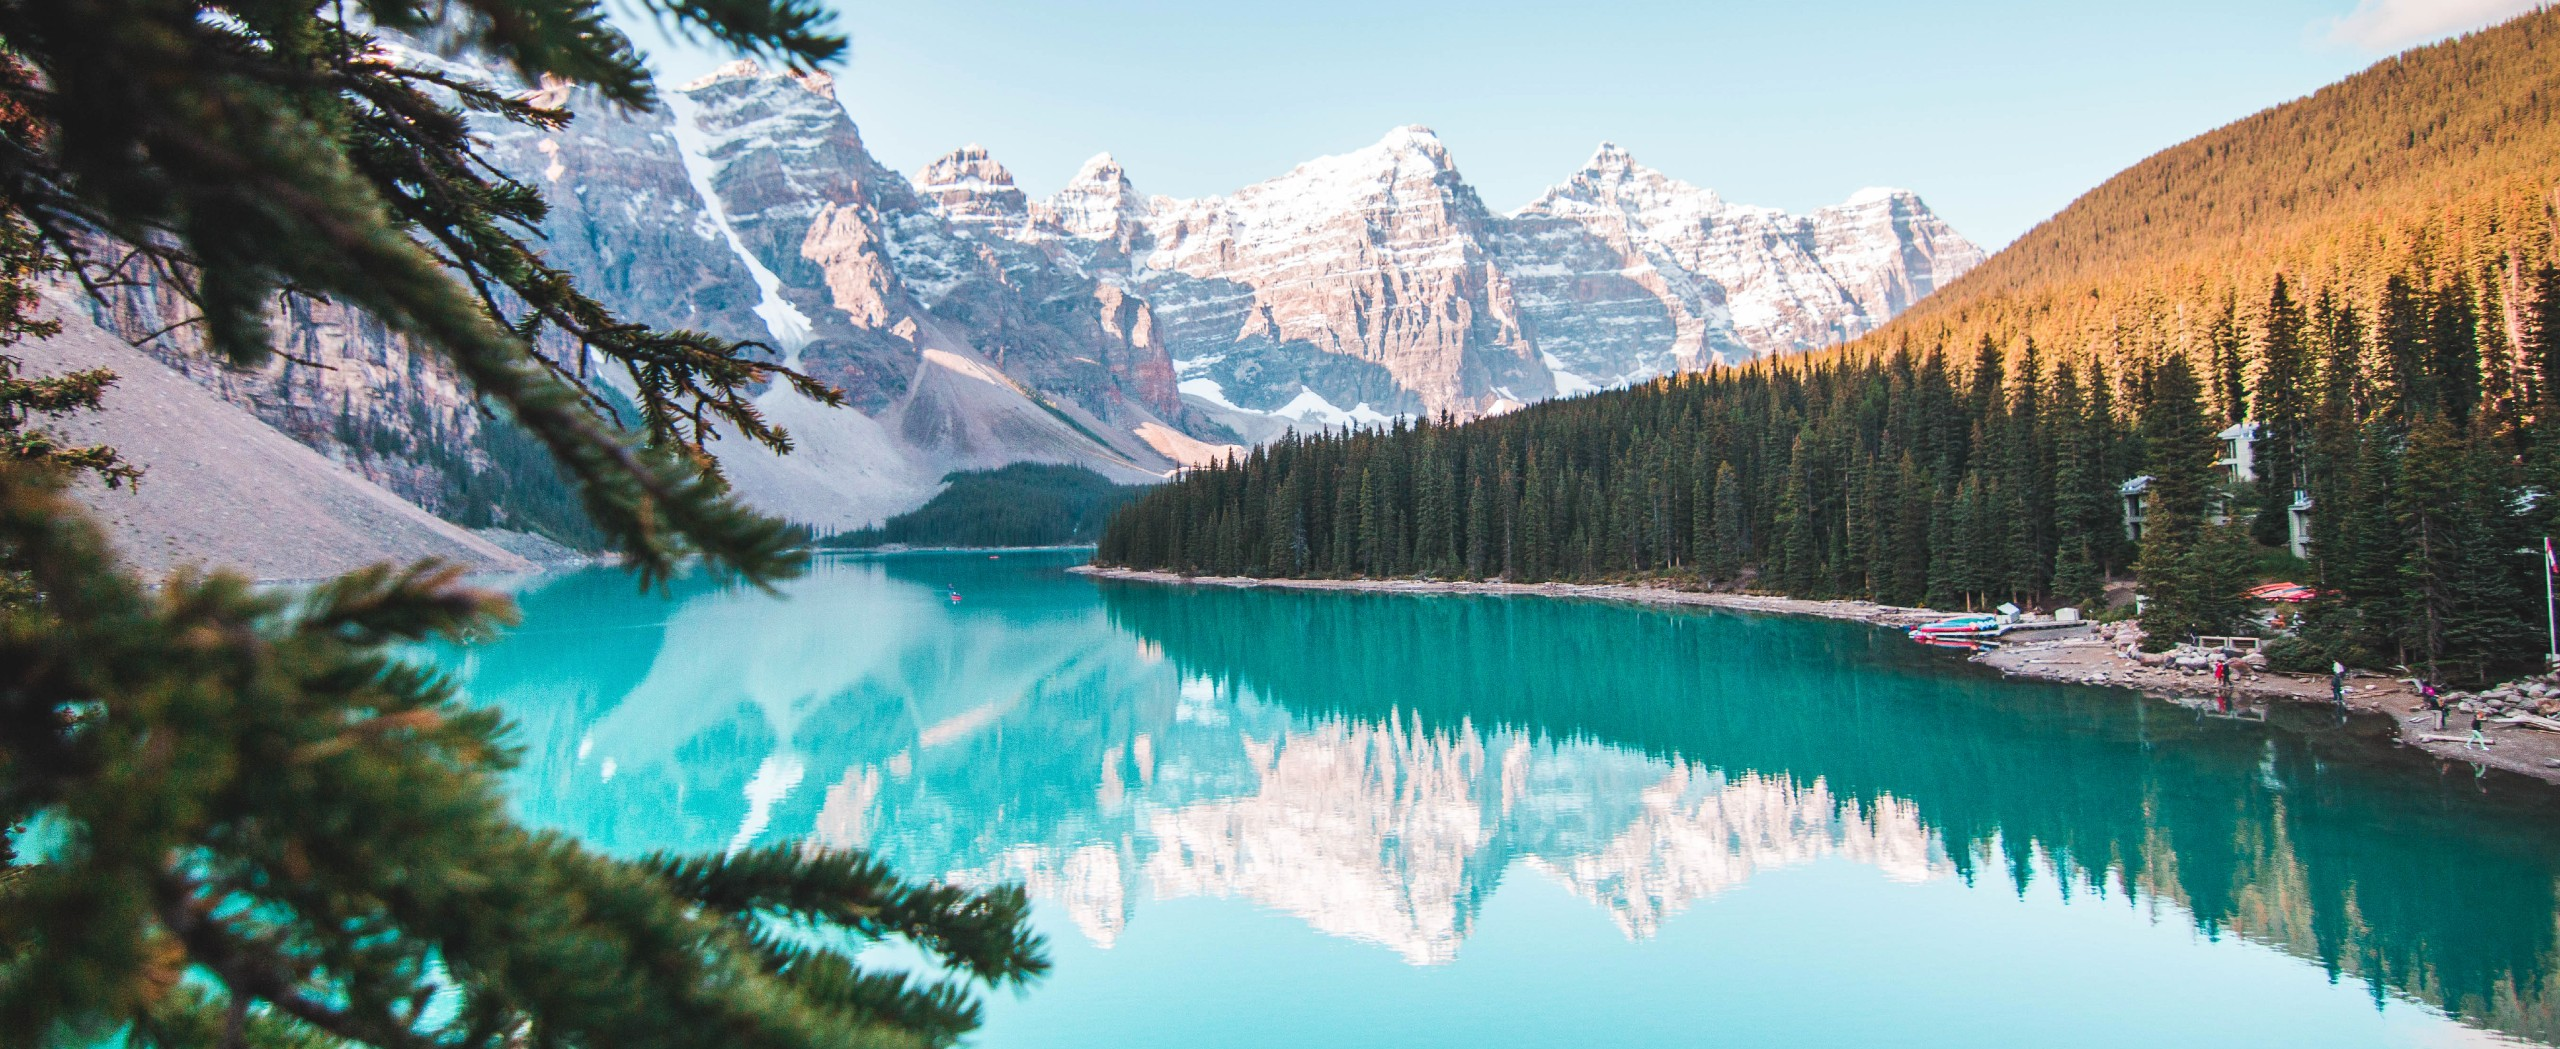 Heart of the Canadian Rockies Self-Drive Tour